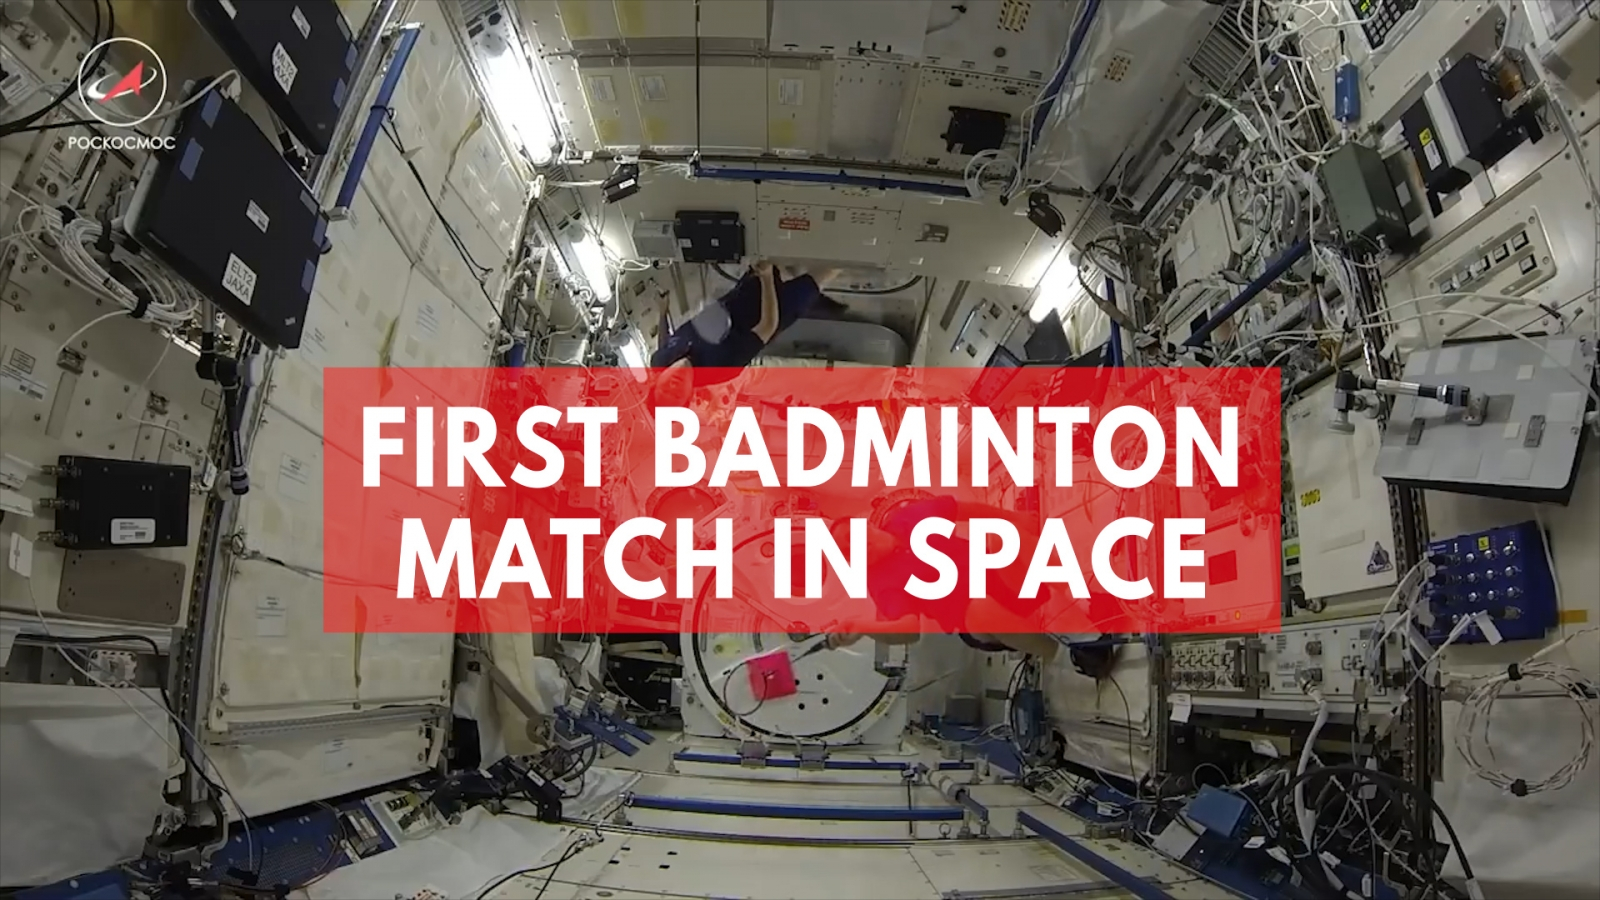 watch-astronauts-play-space-badminton-for-the-first-time-ever-on-the-international-space-station